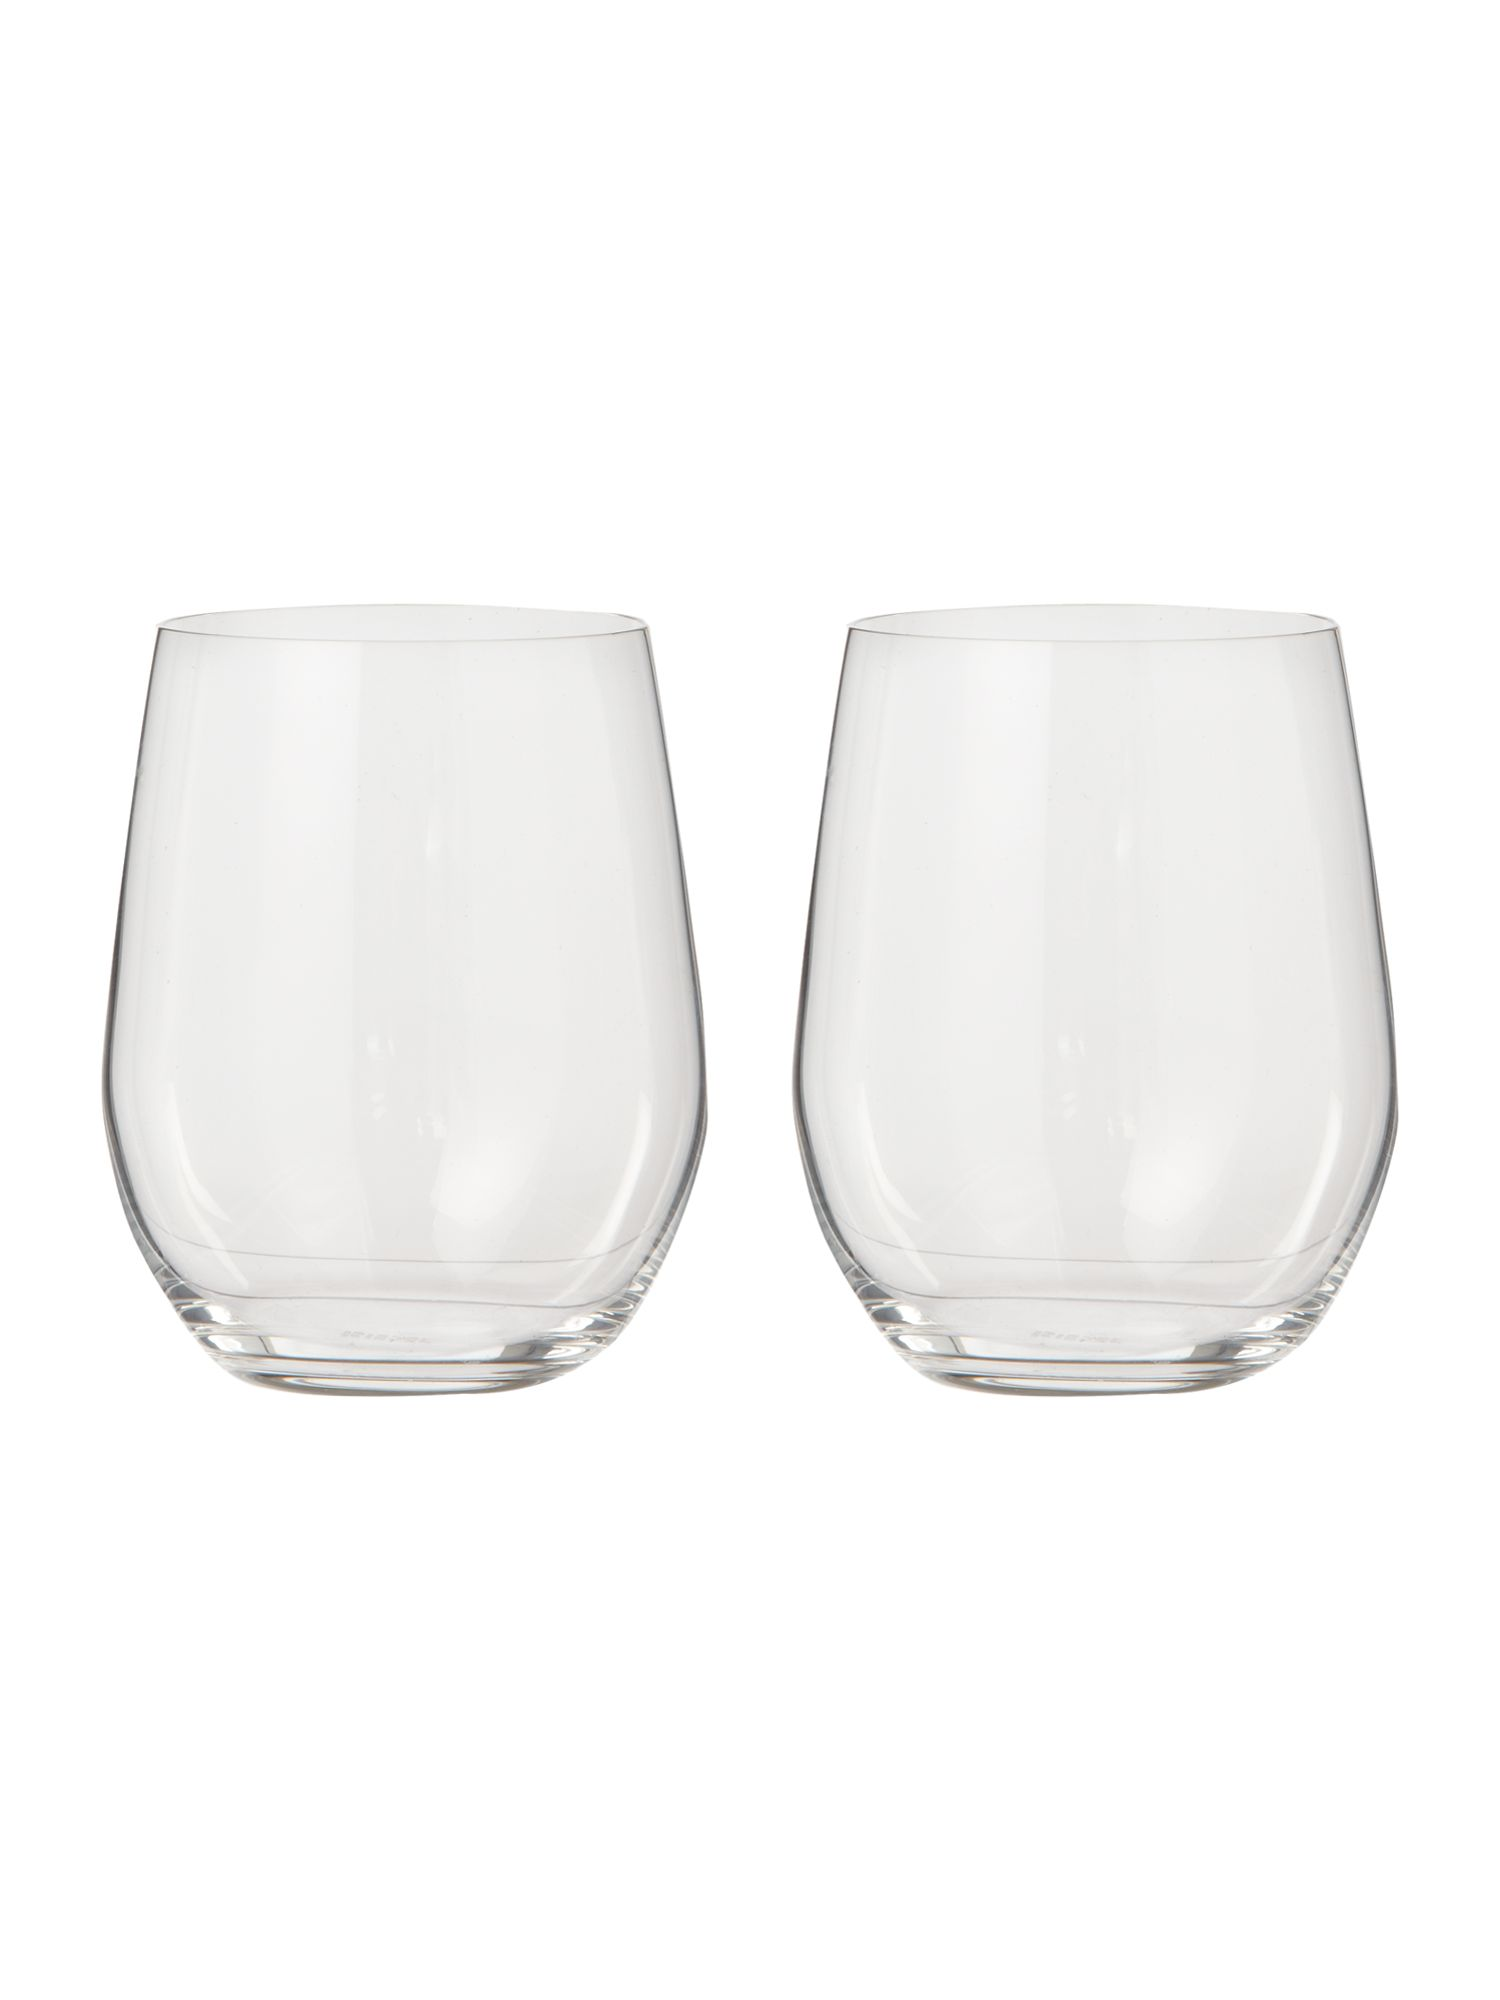 Viognier chardonnay tumbler glasses, box of 2